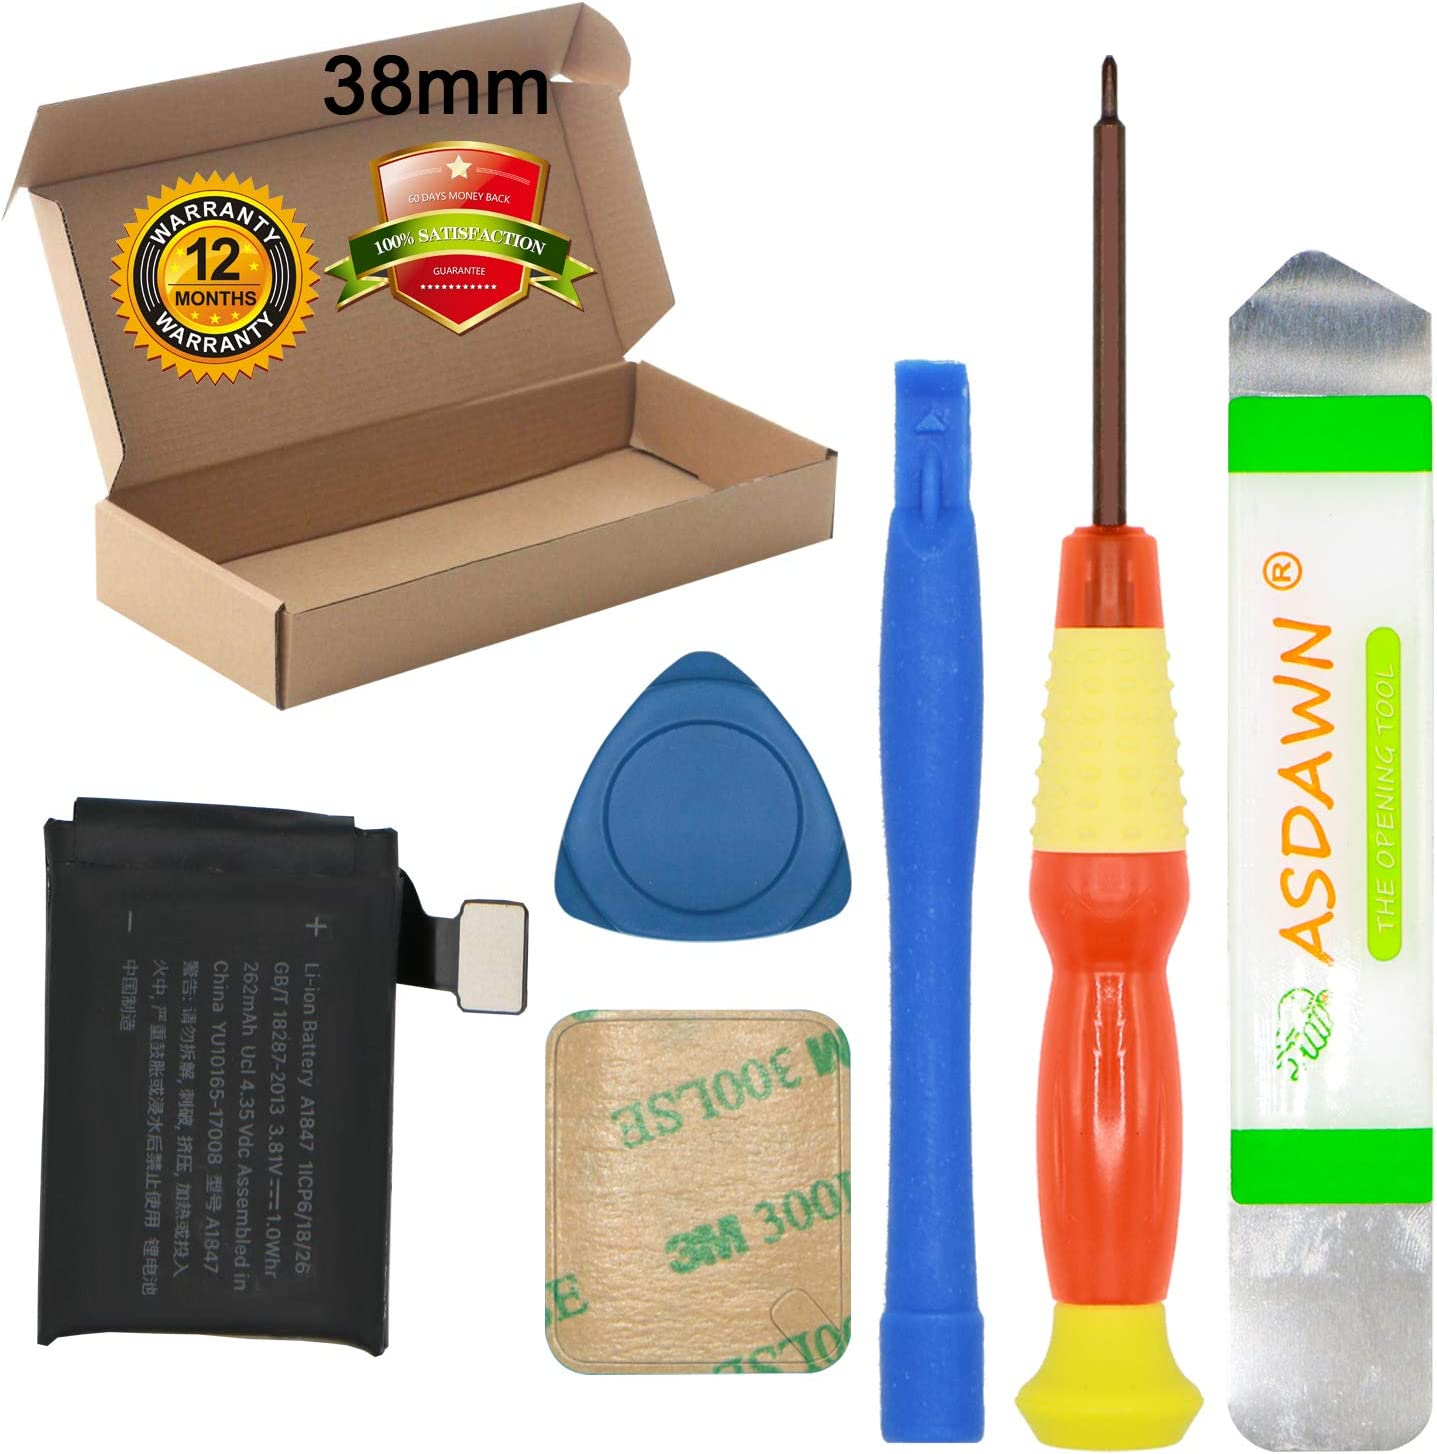 for 38mm Apple Watch Series 3 Battery Replacement (GPS Version + LTE Cellular Version) 3rd Generation A1847 A1848 A1858 A1860 with Repair Tool Set + Back Cover Adhesive + Installation Instruction